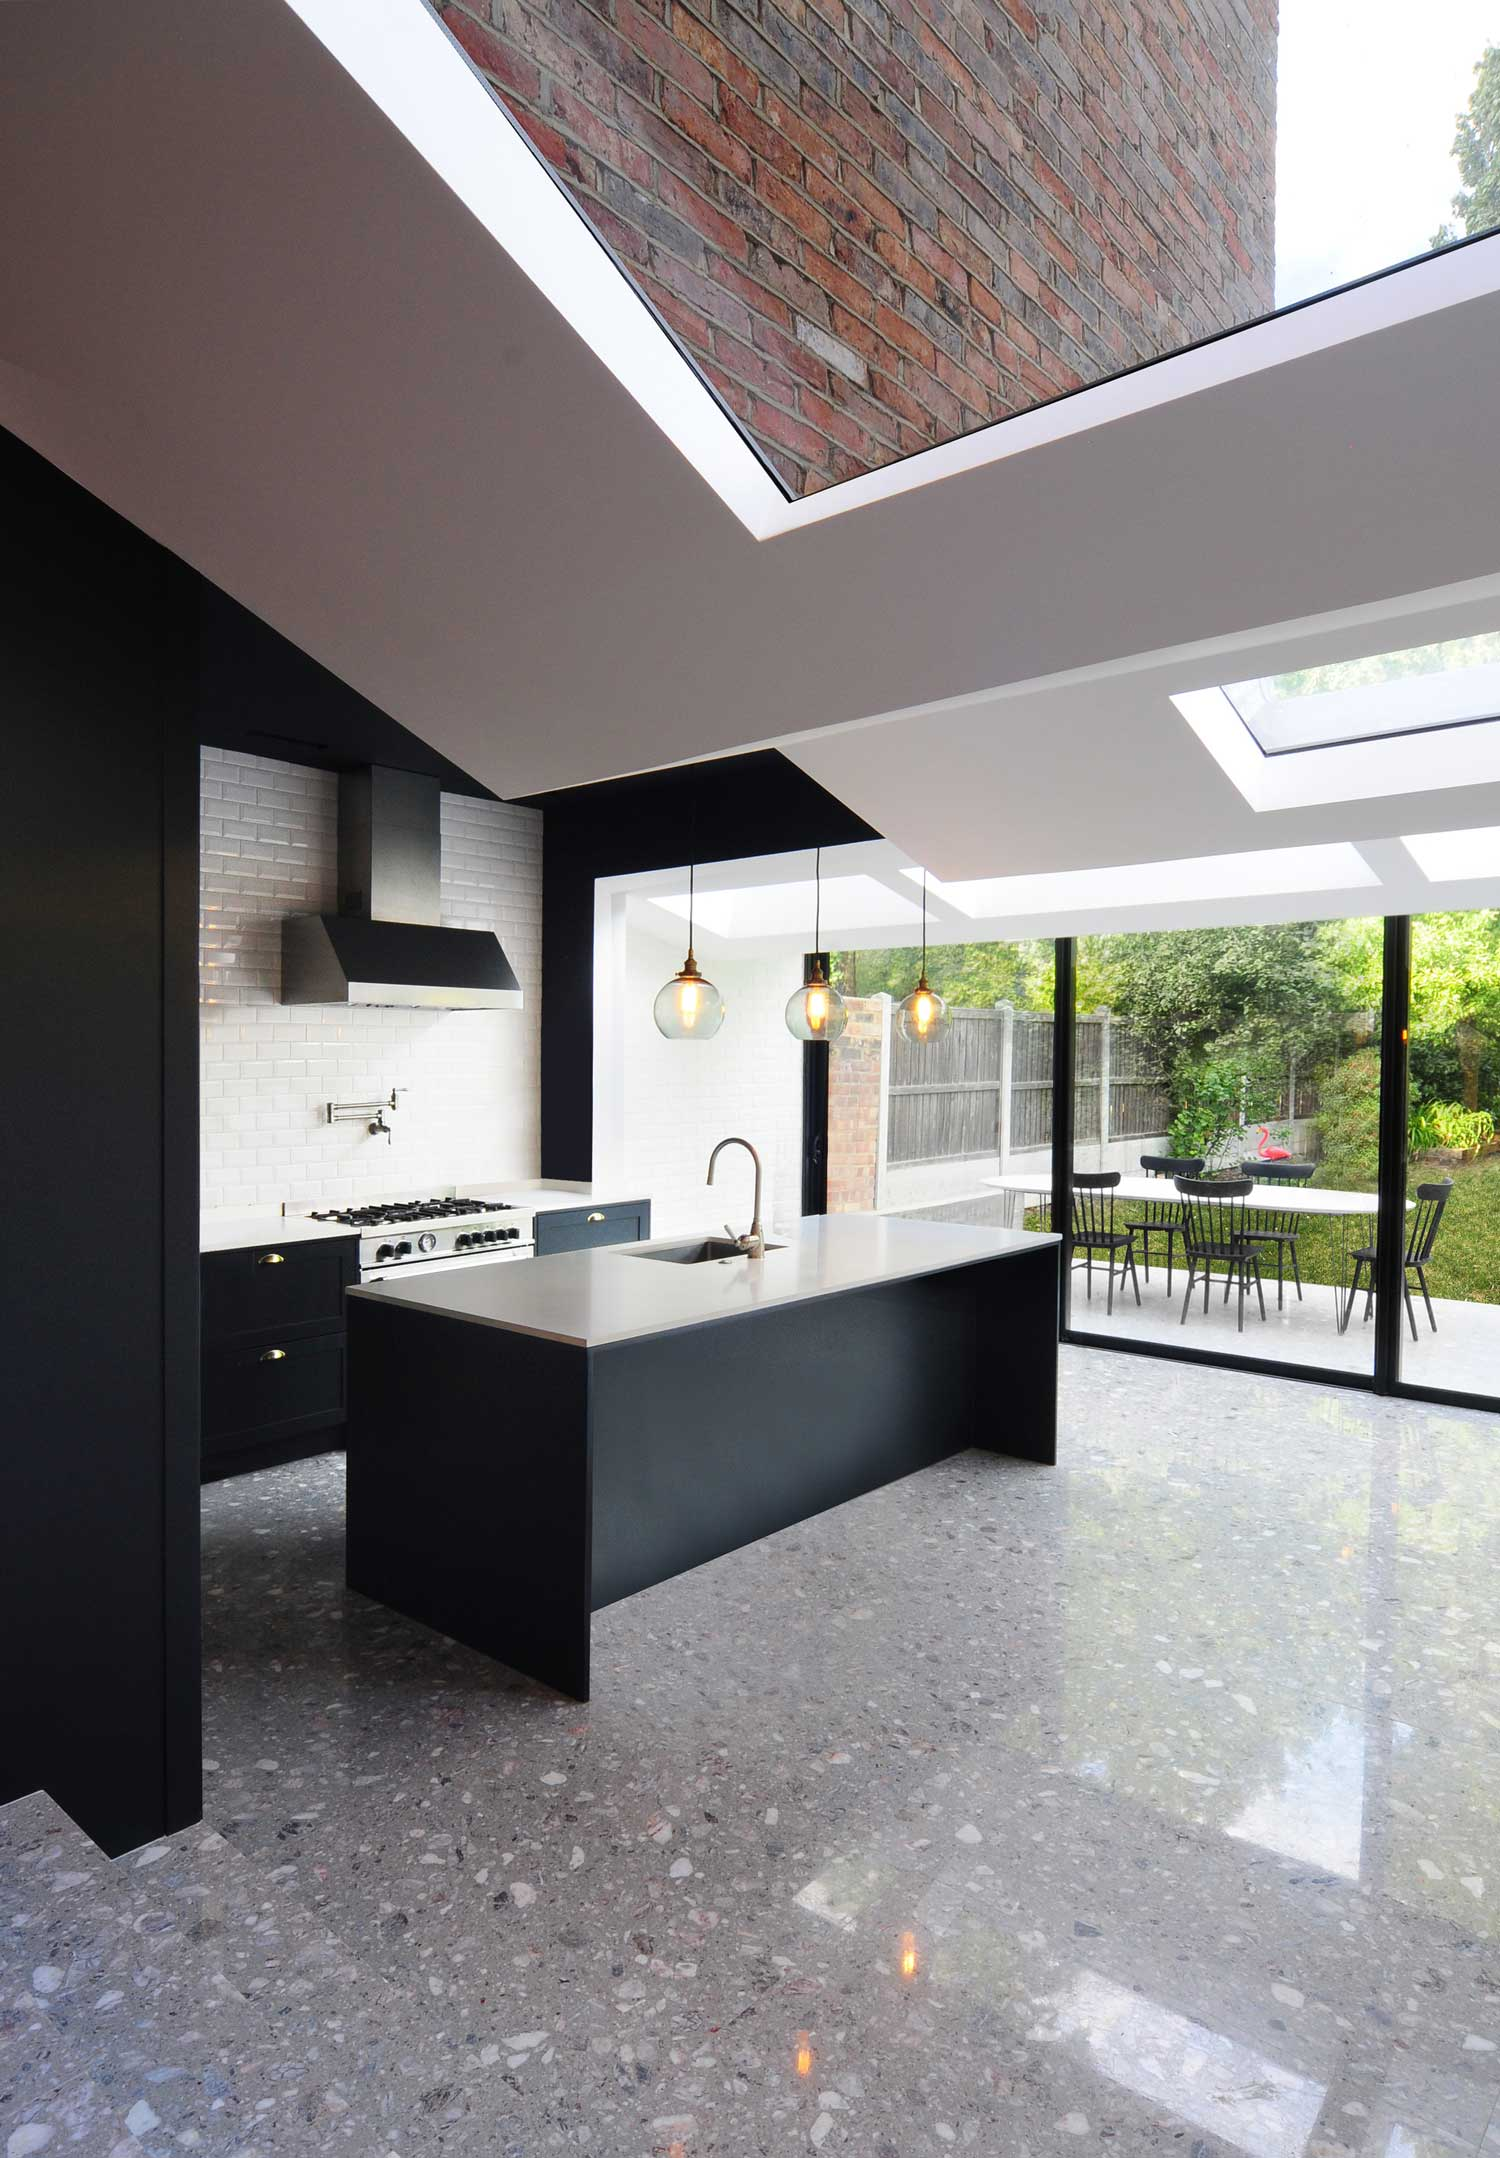 bureau de change 39 s residential extension in north london. Black Bedroom Furniture Sets. Home Design Ideas